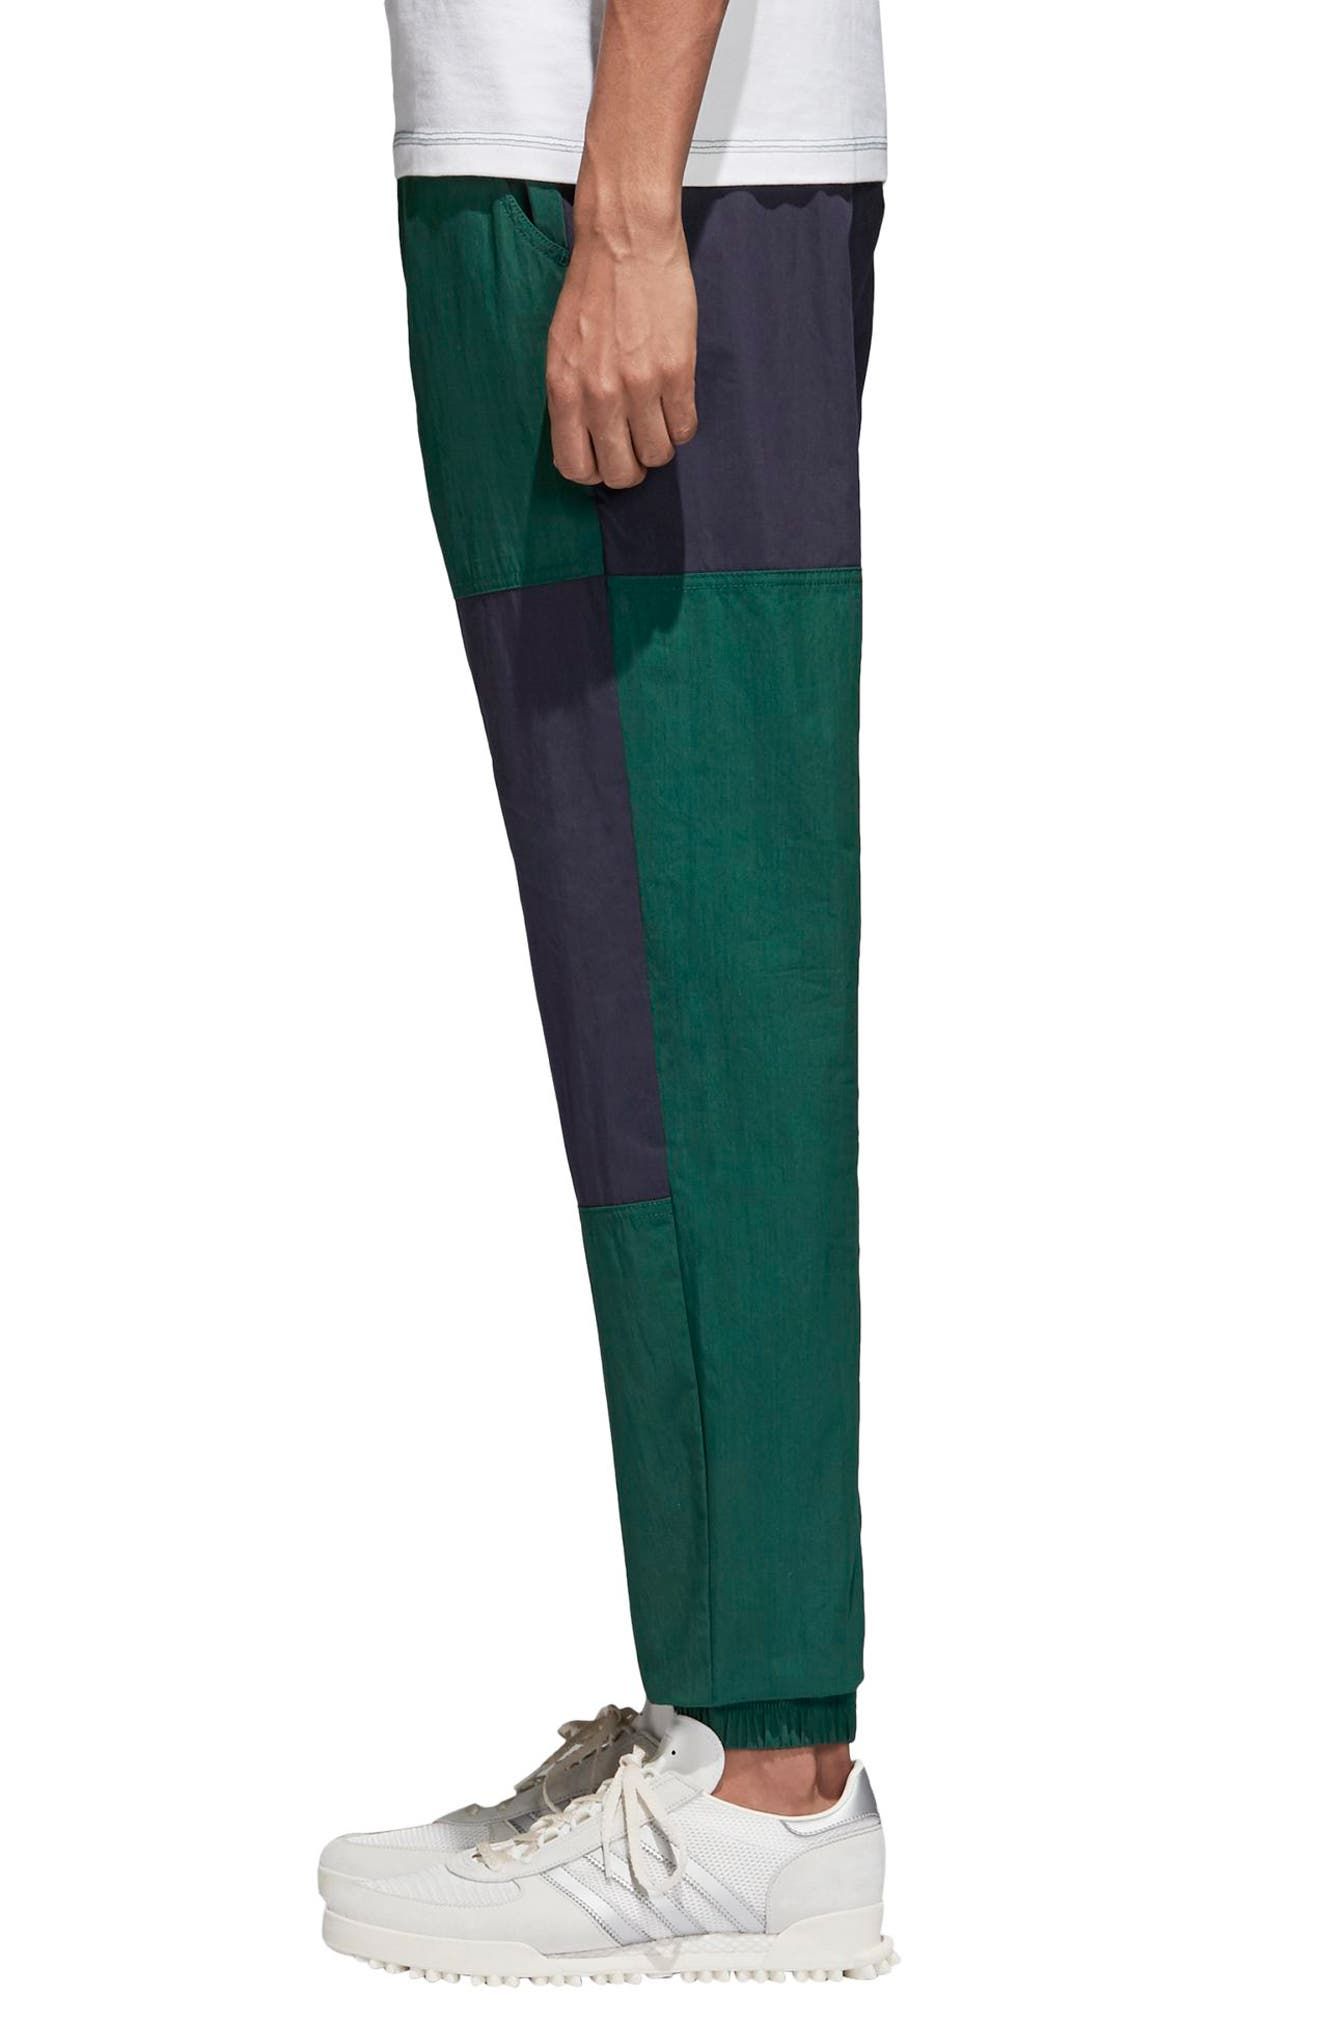 Atric Slim Fit Pants,                             Alternate thumbnail 3, color,                             COLLEGIATE GREEN